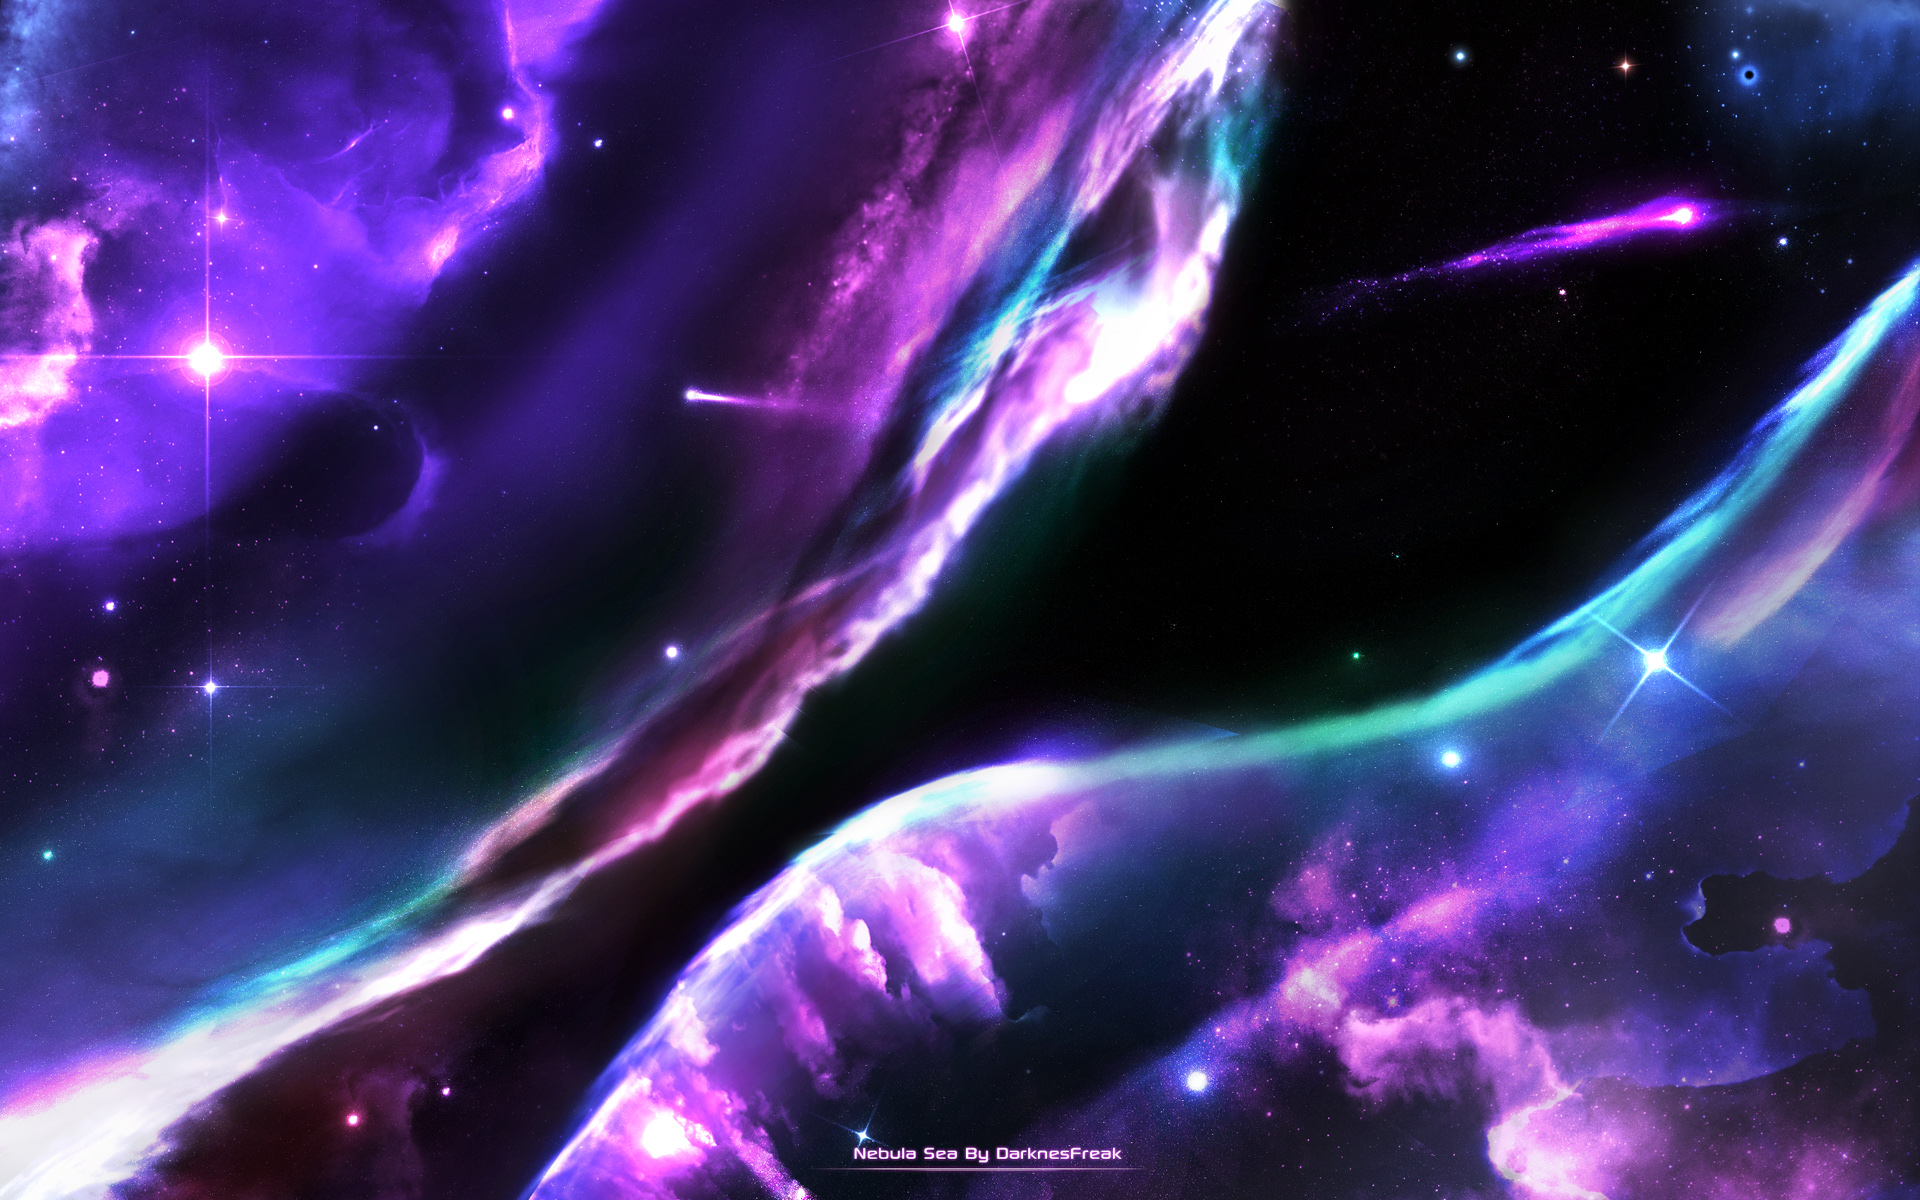 SpaceFantasy Awesome Wallpapers